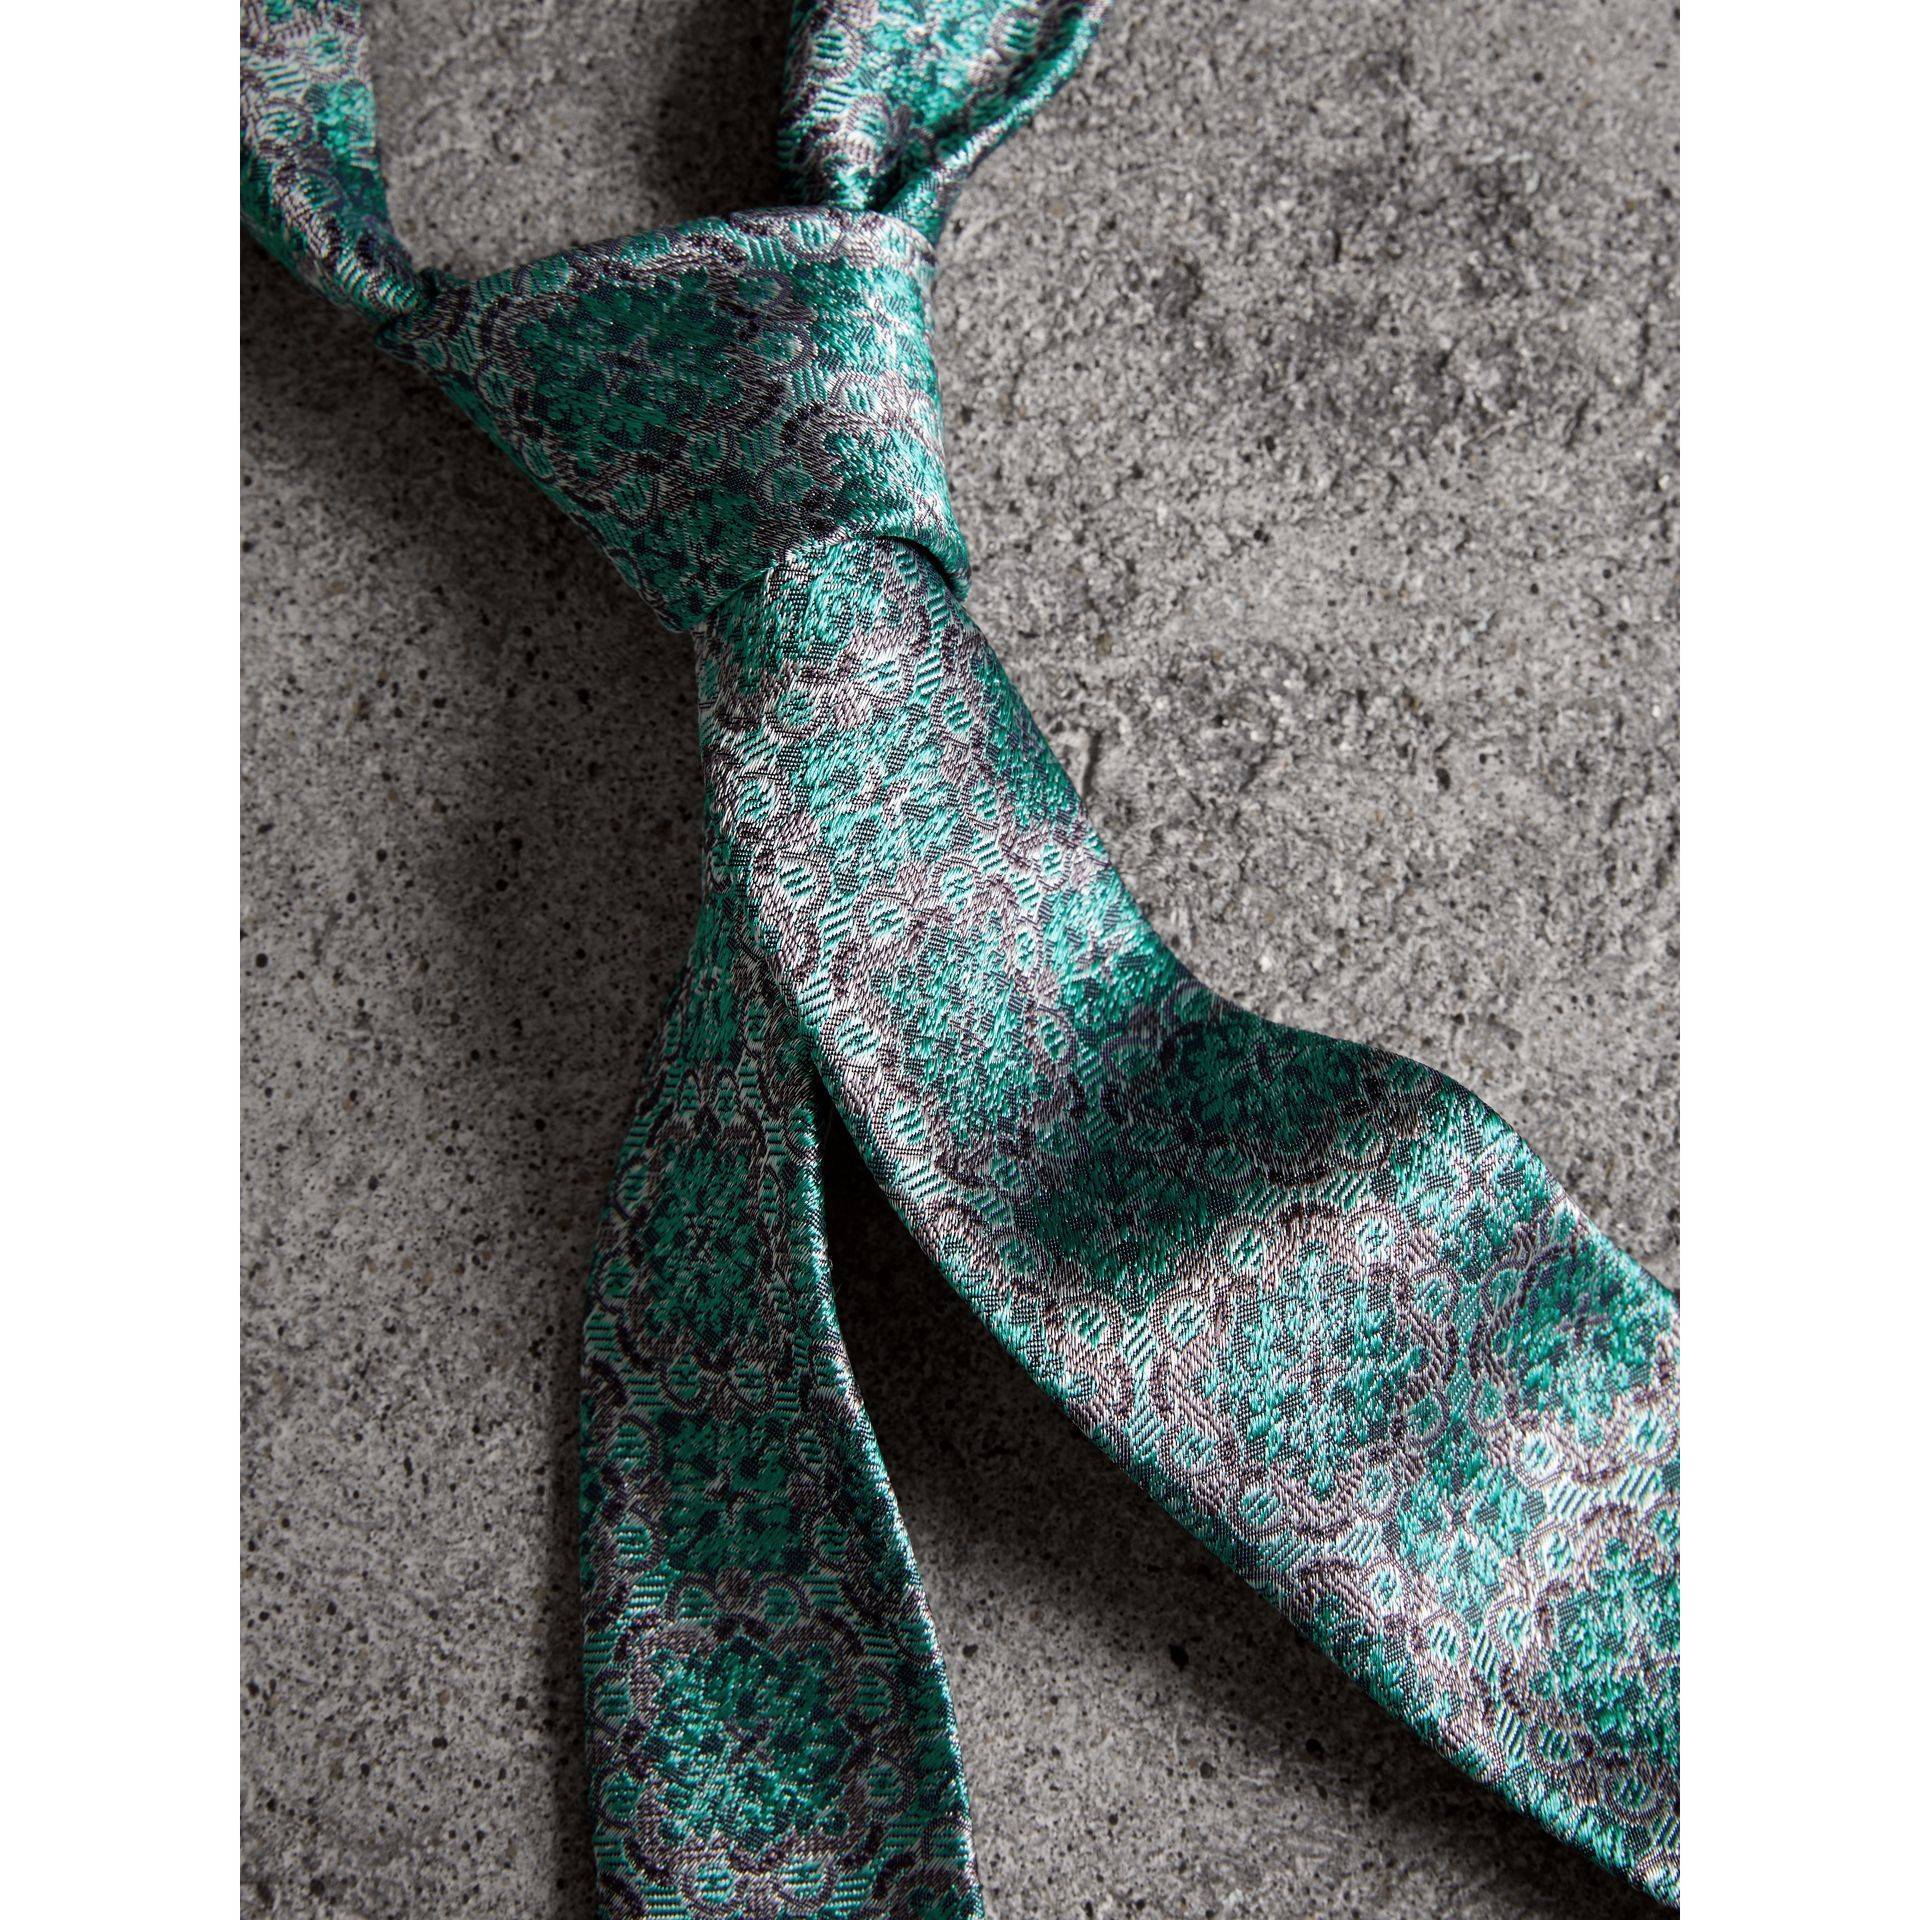 Slim Cut Silk Jacquard Tie in Turquoise - Men | Burberry Singapore - gallery image 2